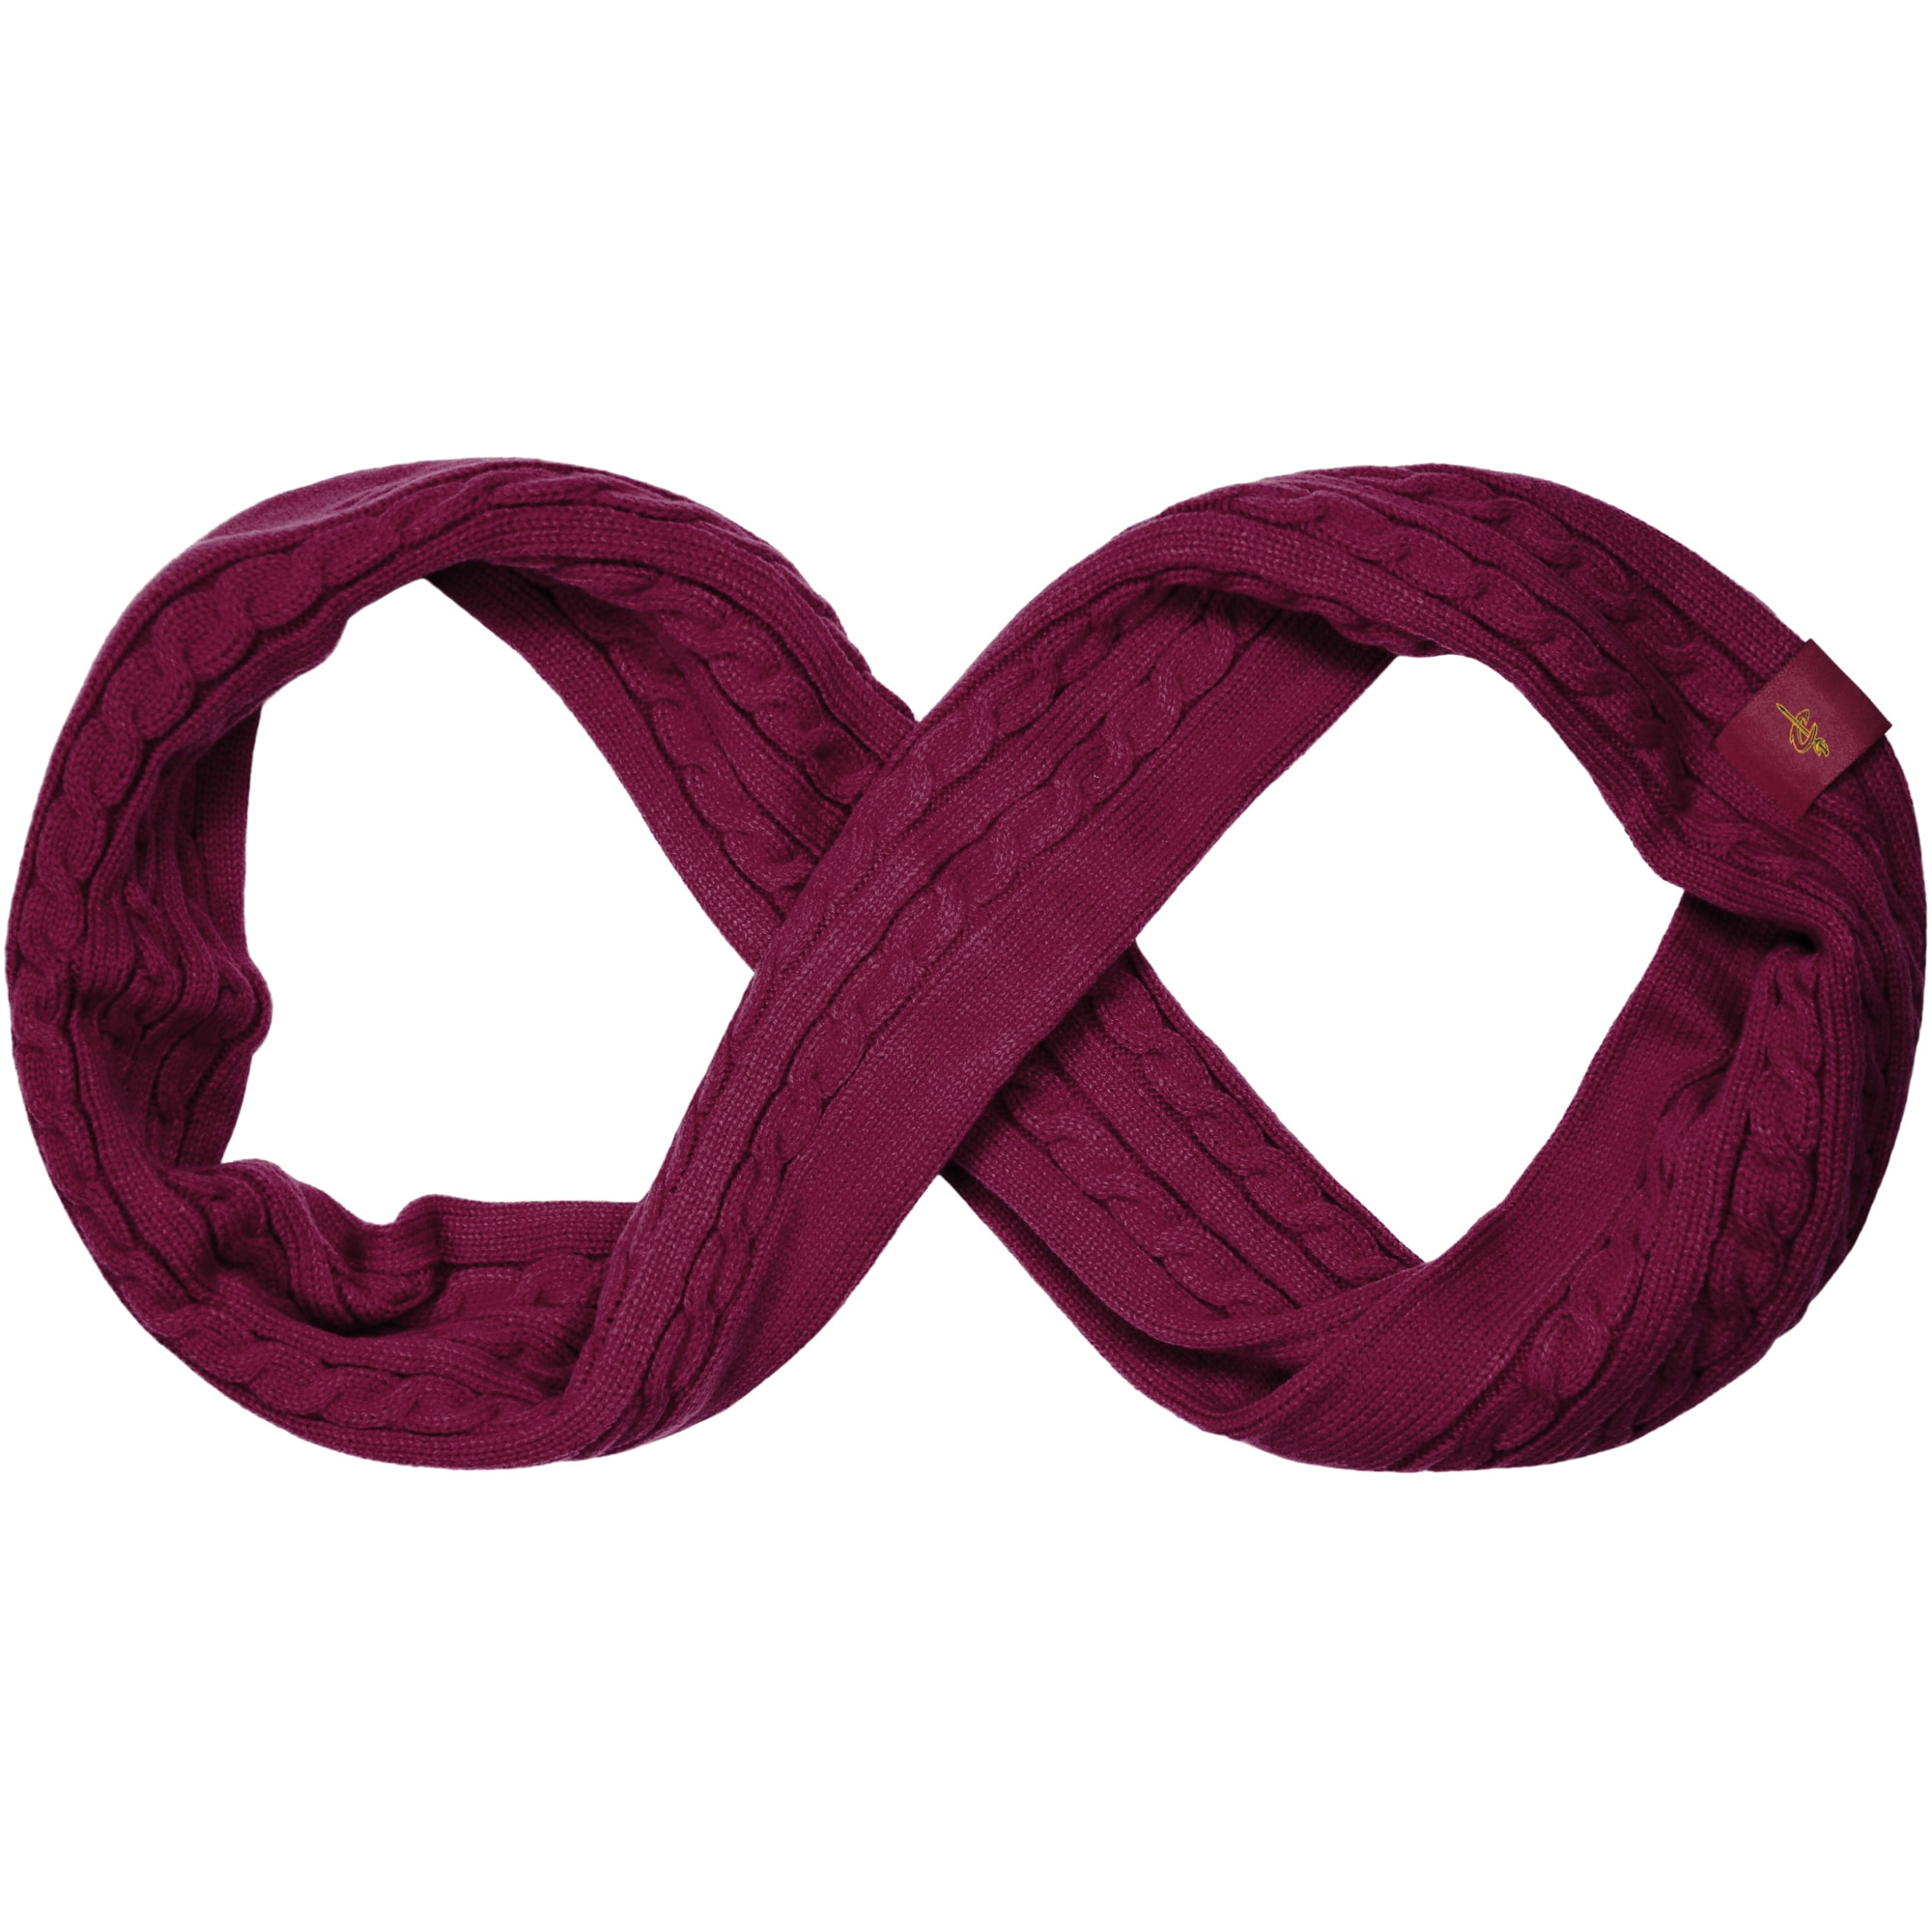 Cleveland Cavaliers Women's Cable Knit Infinity Scarf - Wine